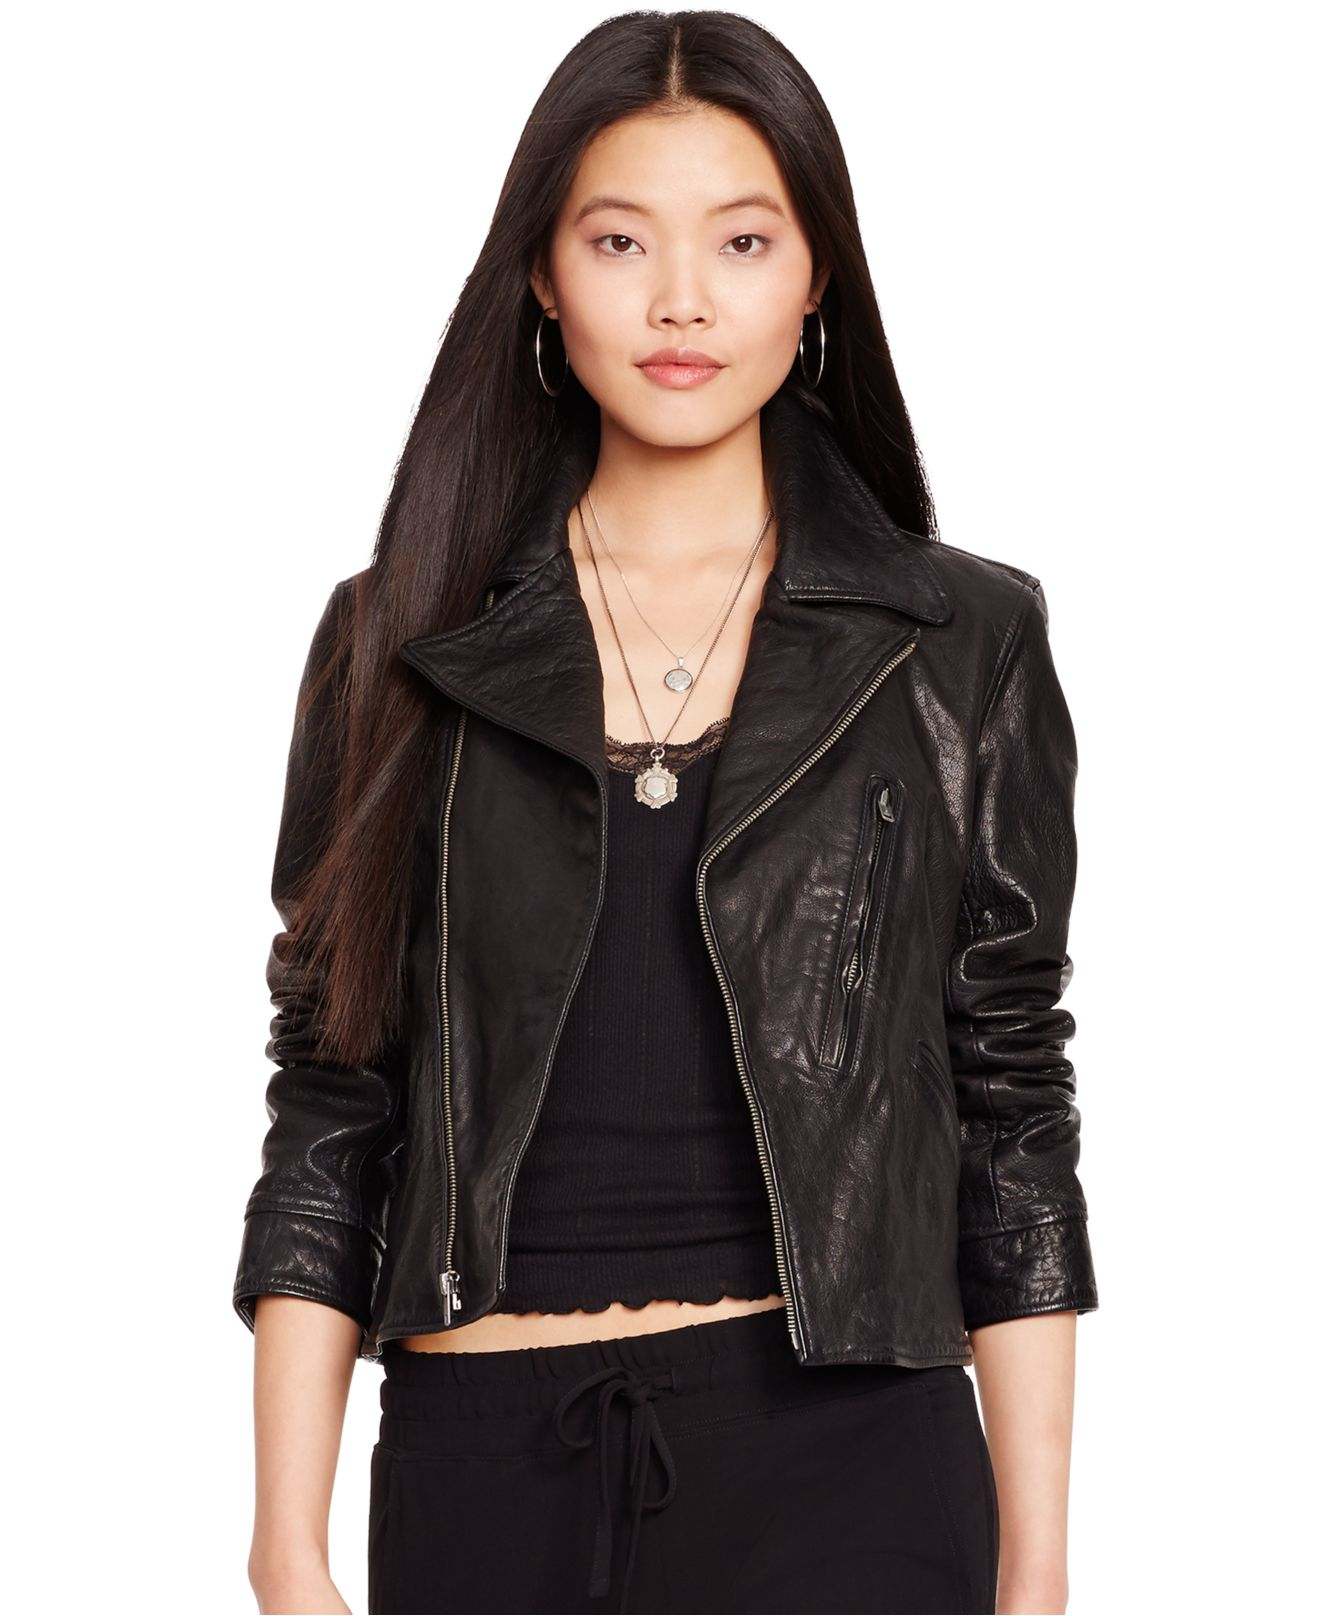 polo ralph lauren washed leather jacket in black lyst. Black Bedroom Furniture Sets. Home Design Ideas